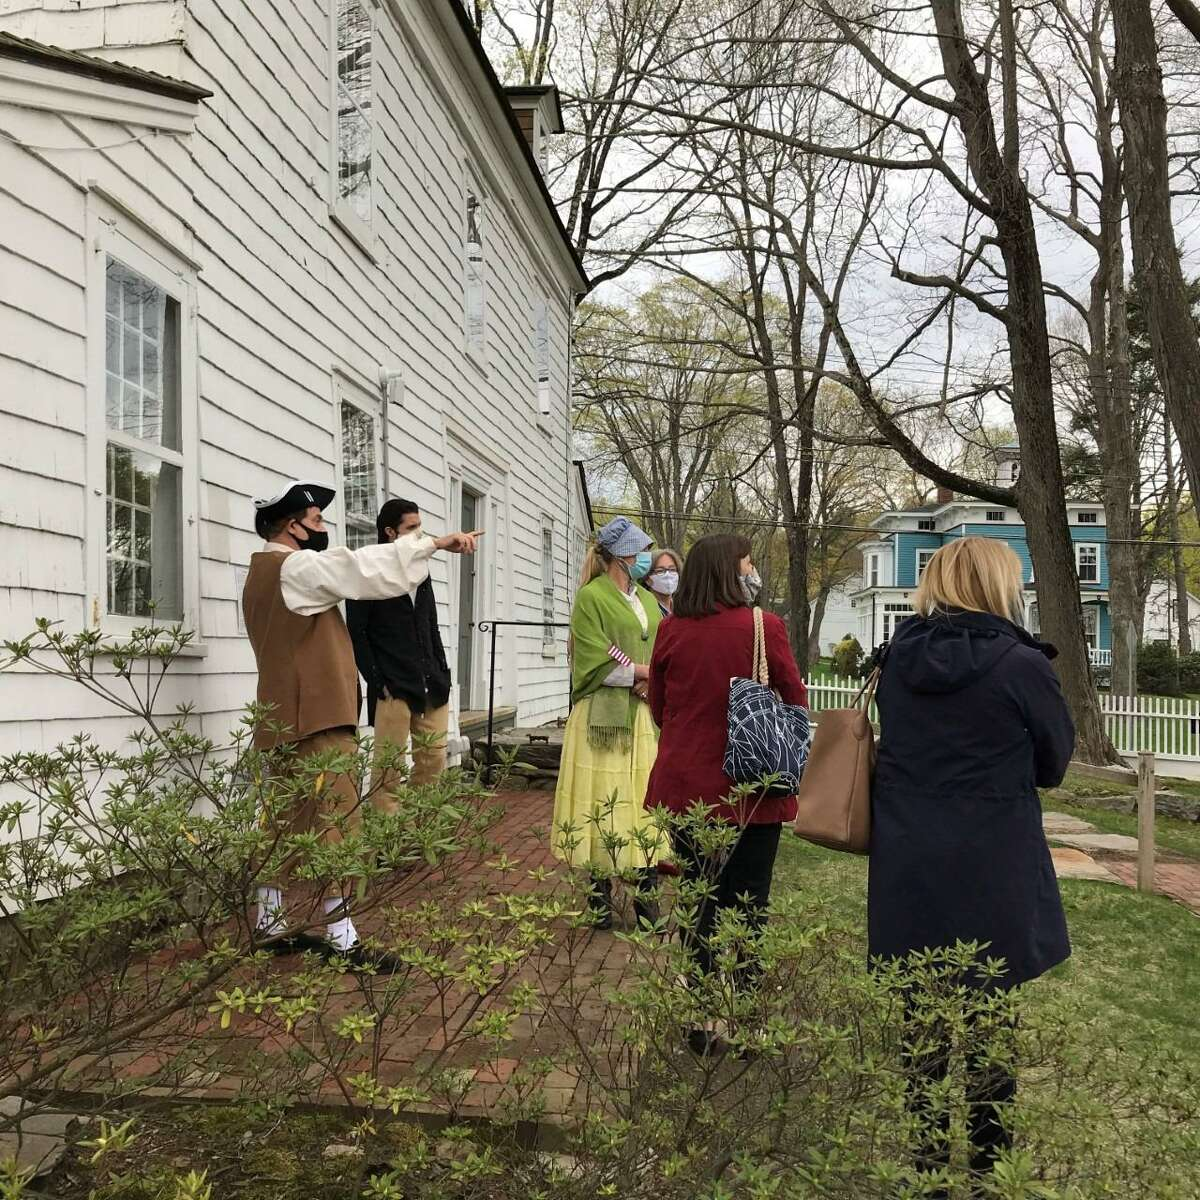 The Keeler Tavern Museum & History Center commemorates the Battle of Ridgefield with activities and programs for audiences of all ages, including a colonial walking tour, seen here.